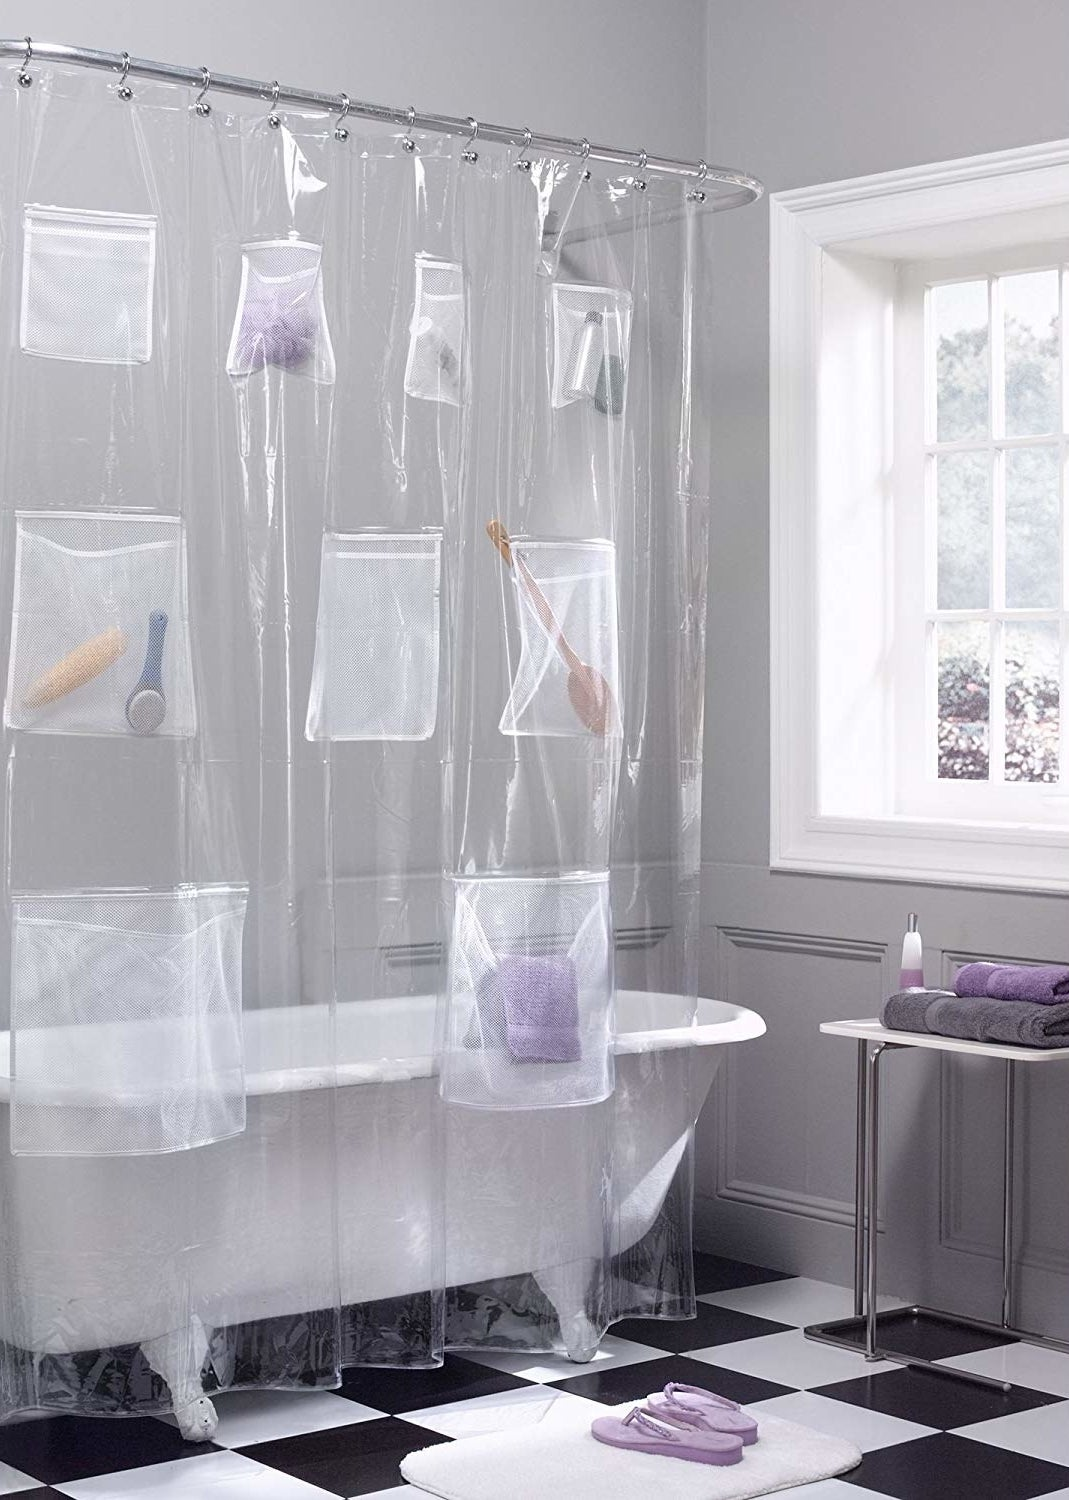 The transparent shower curtain